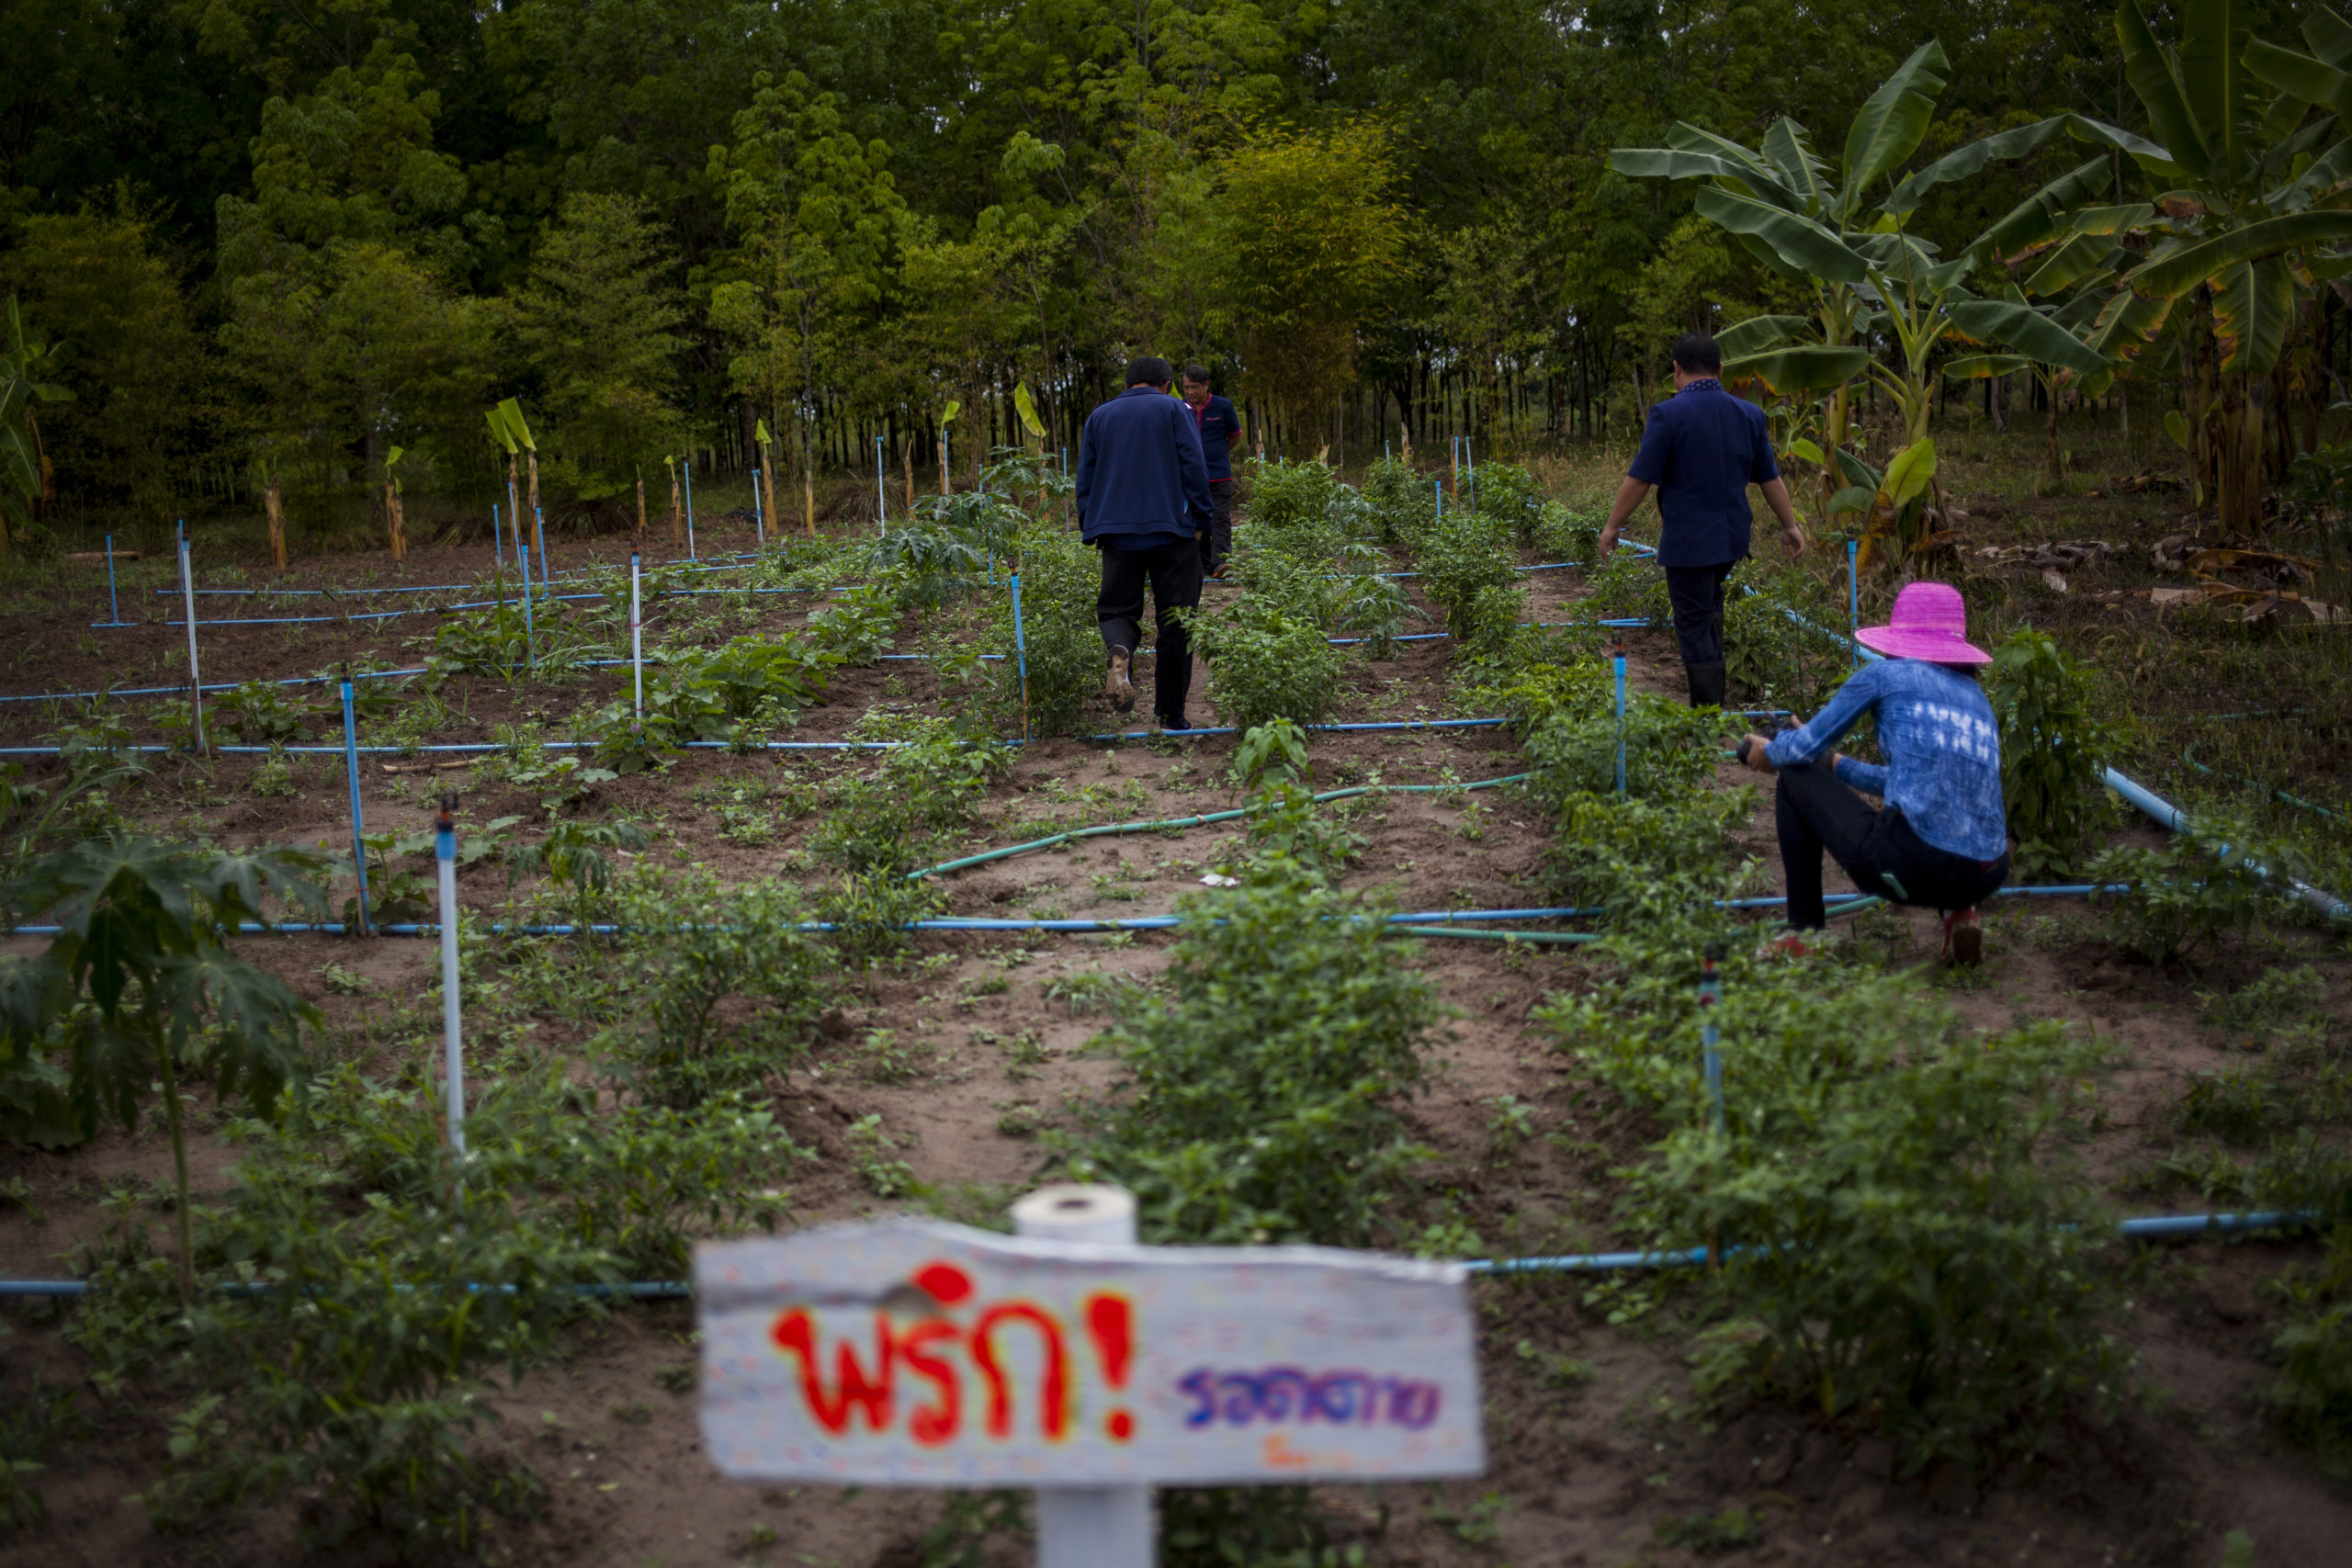 An agroecology project in Thailand